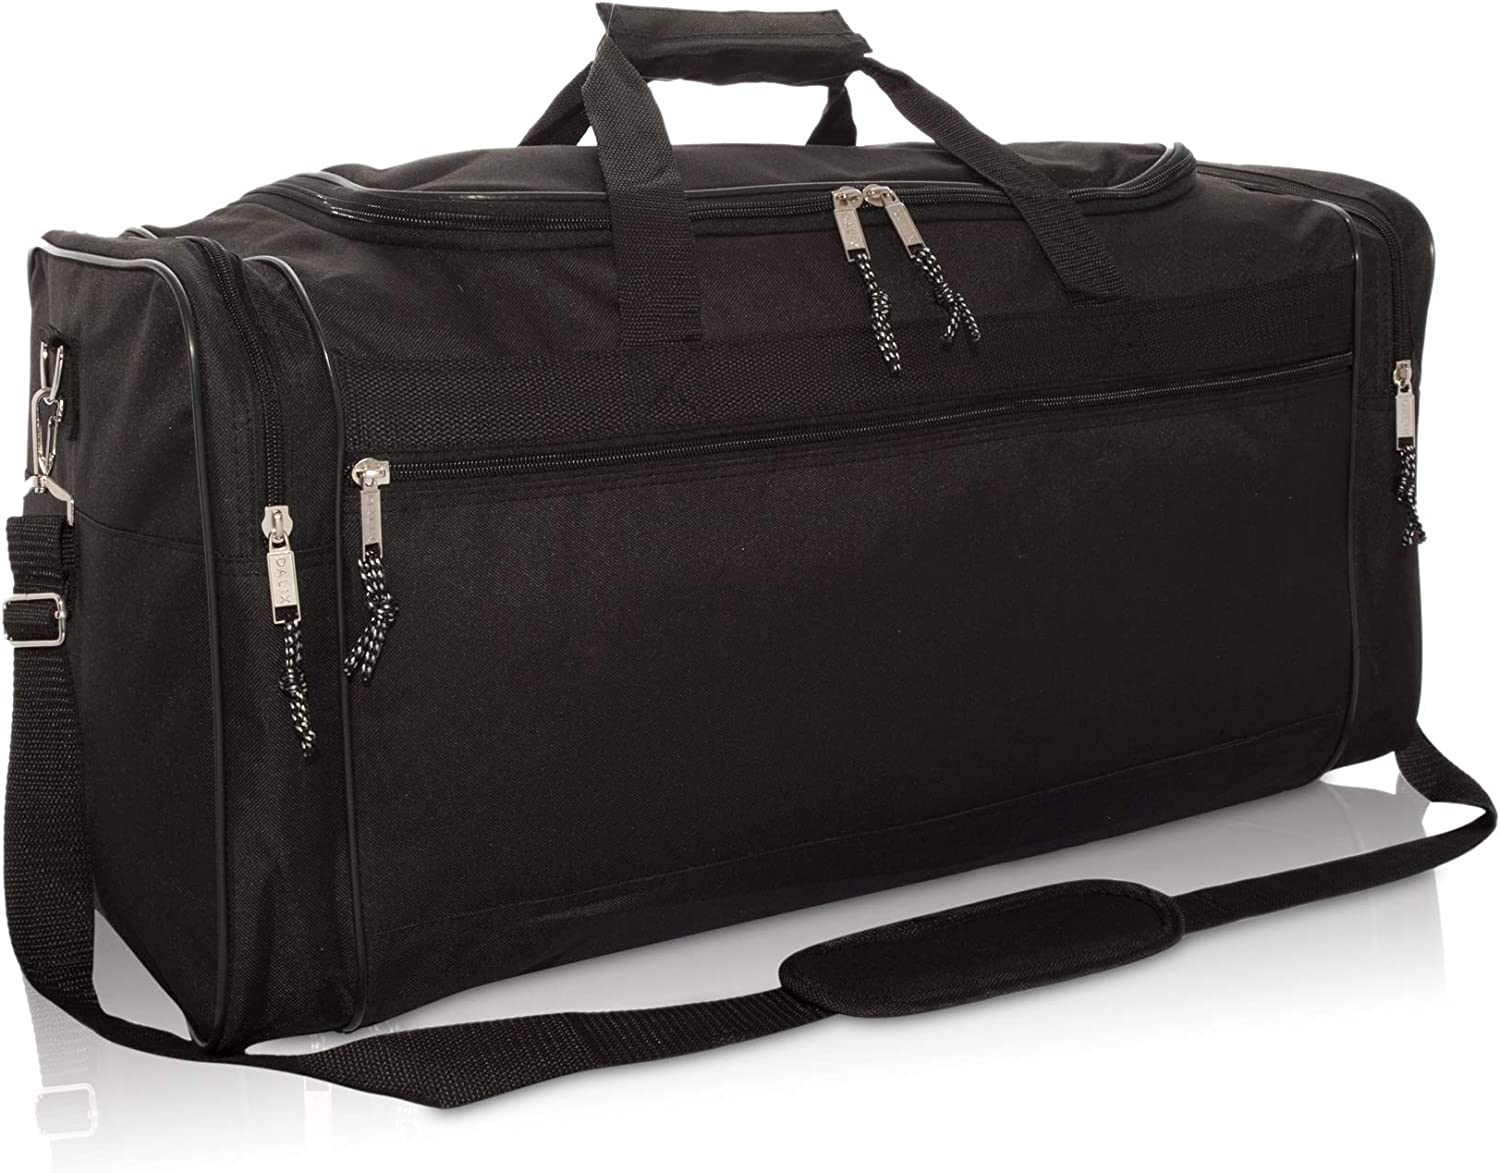 "| DALIX 25"" Extra Large Vacation Travel Duffle Bag in Black 